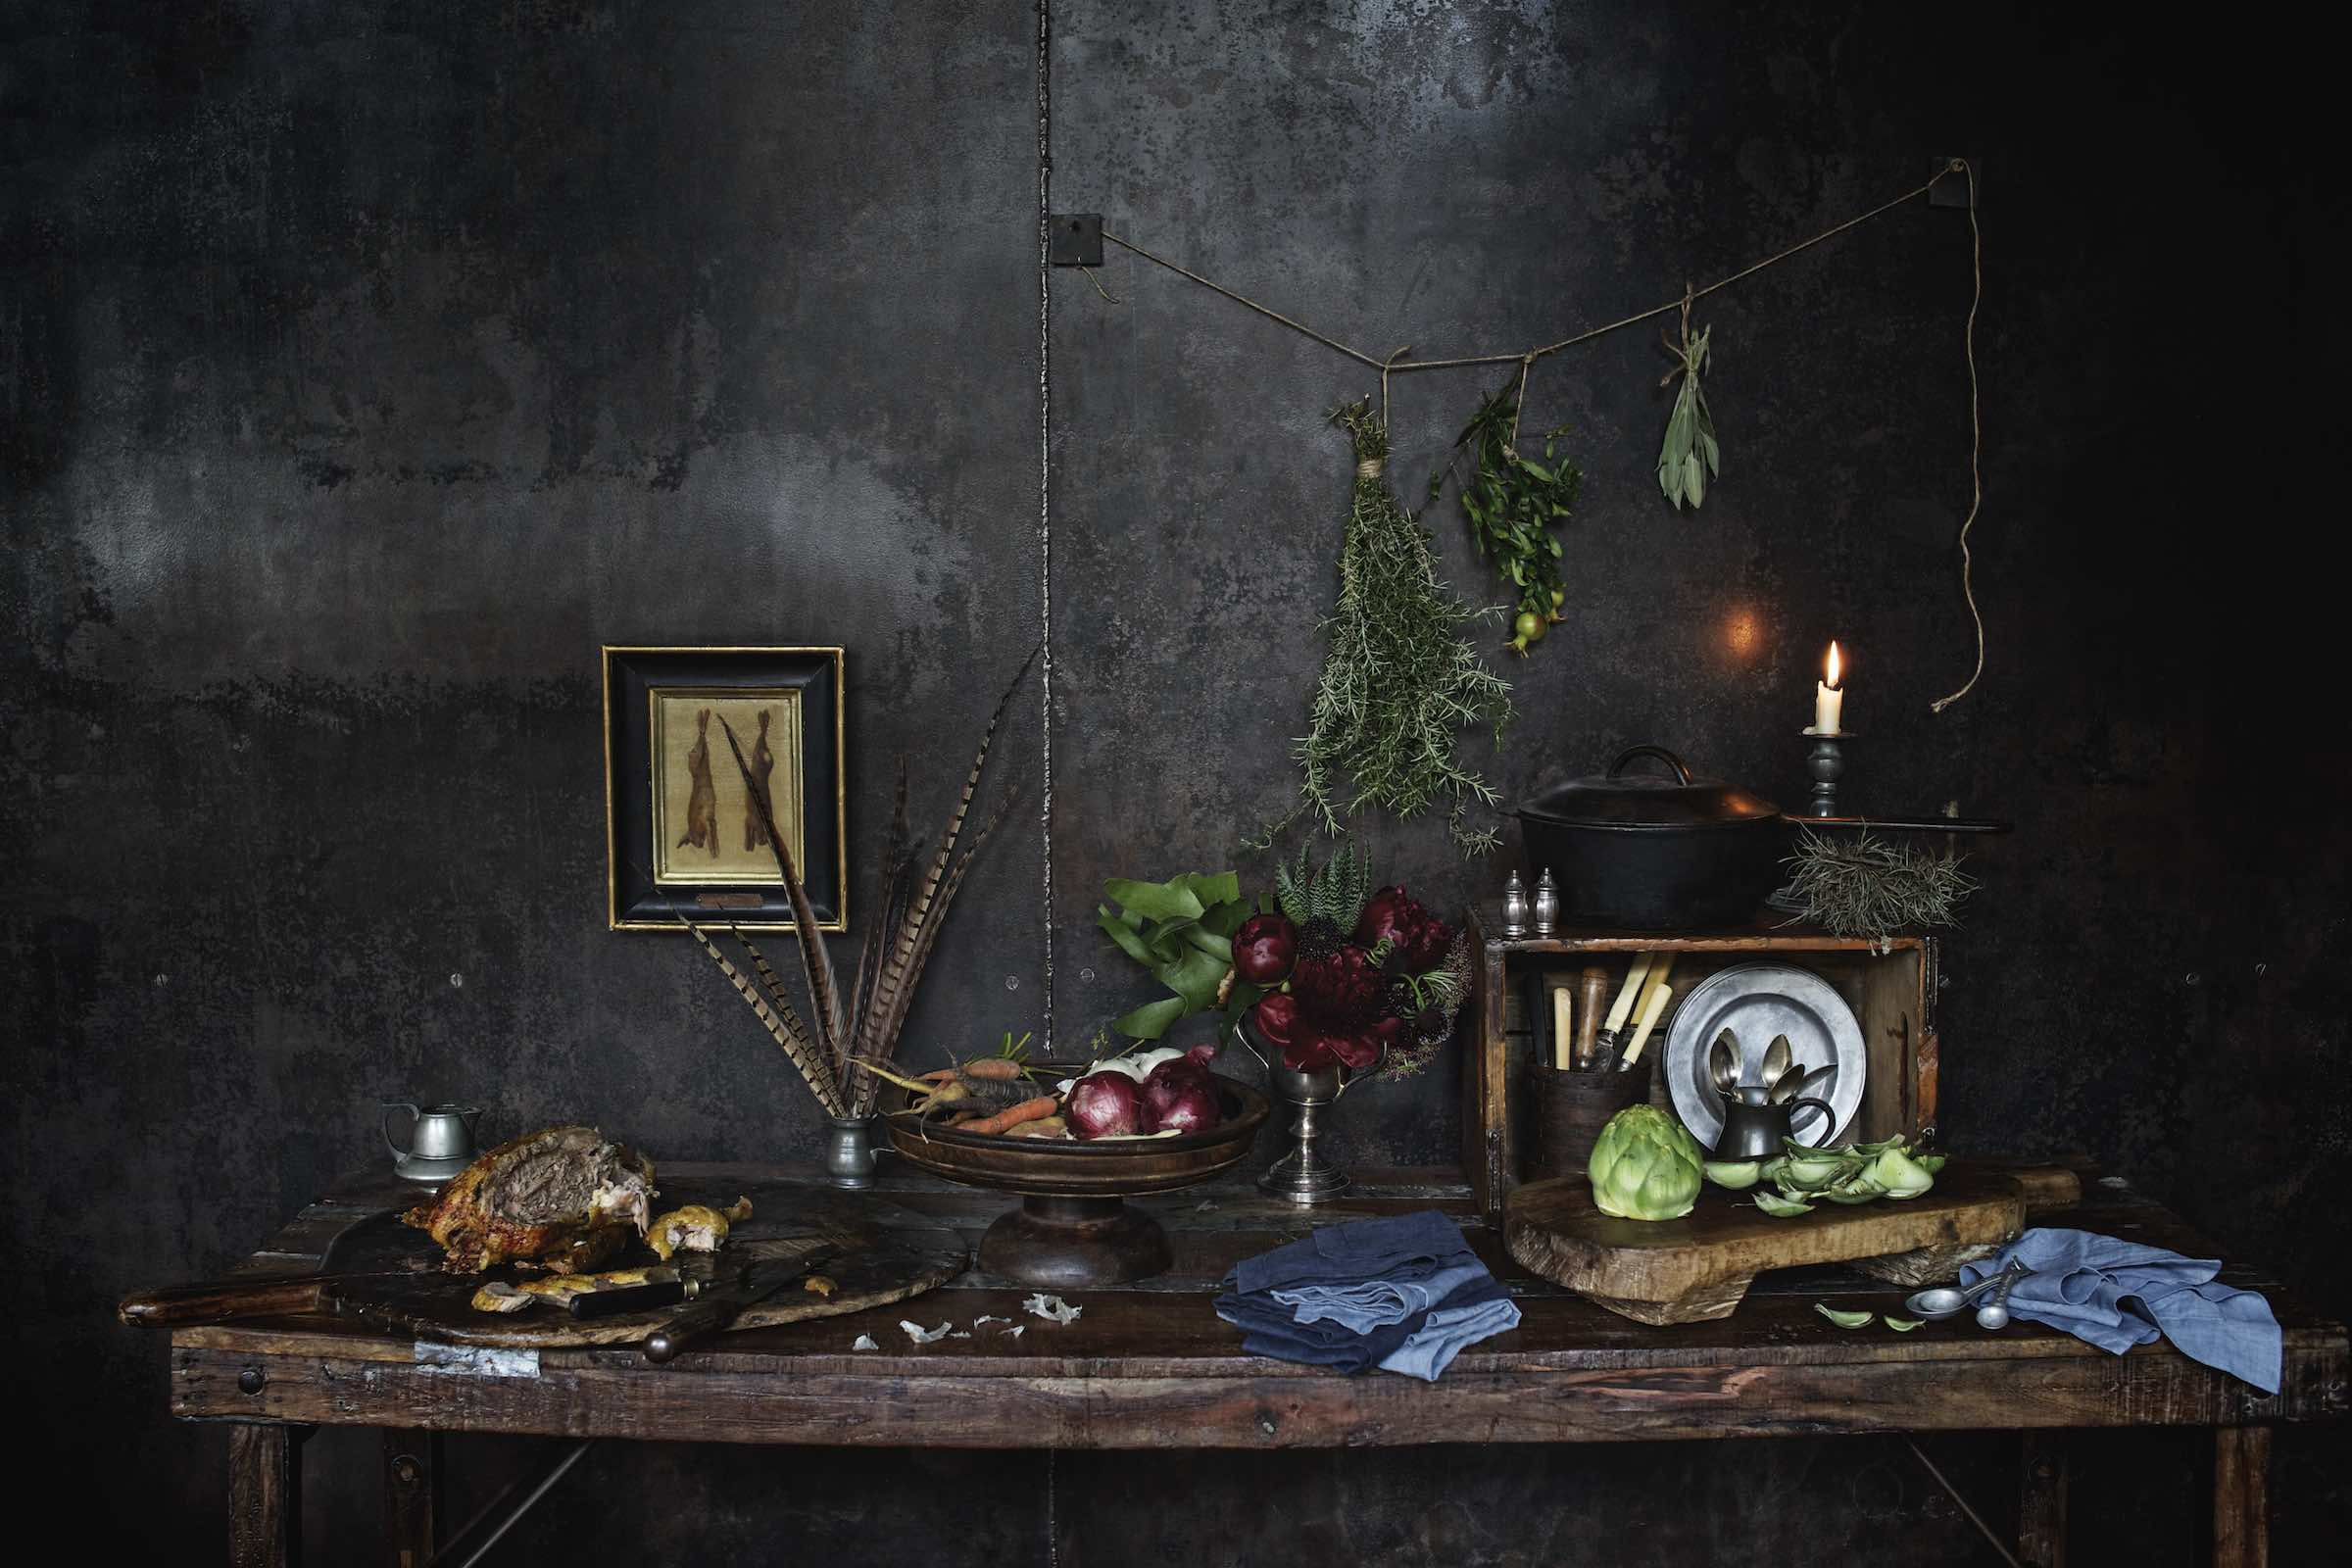 Jody Horton Photography - Rustic food preparation scene on a candlelit, wood table.